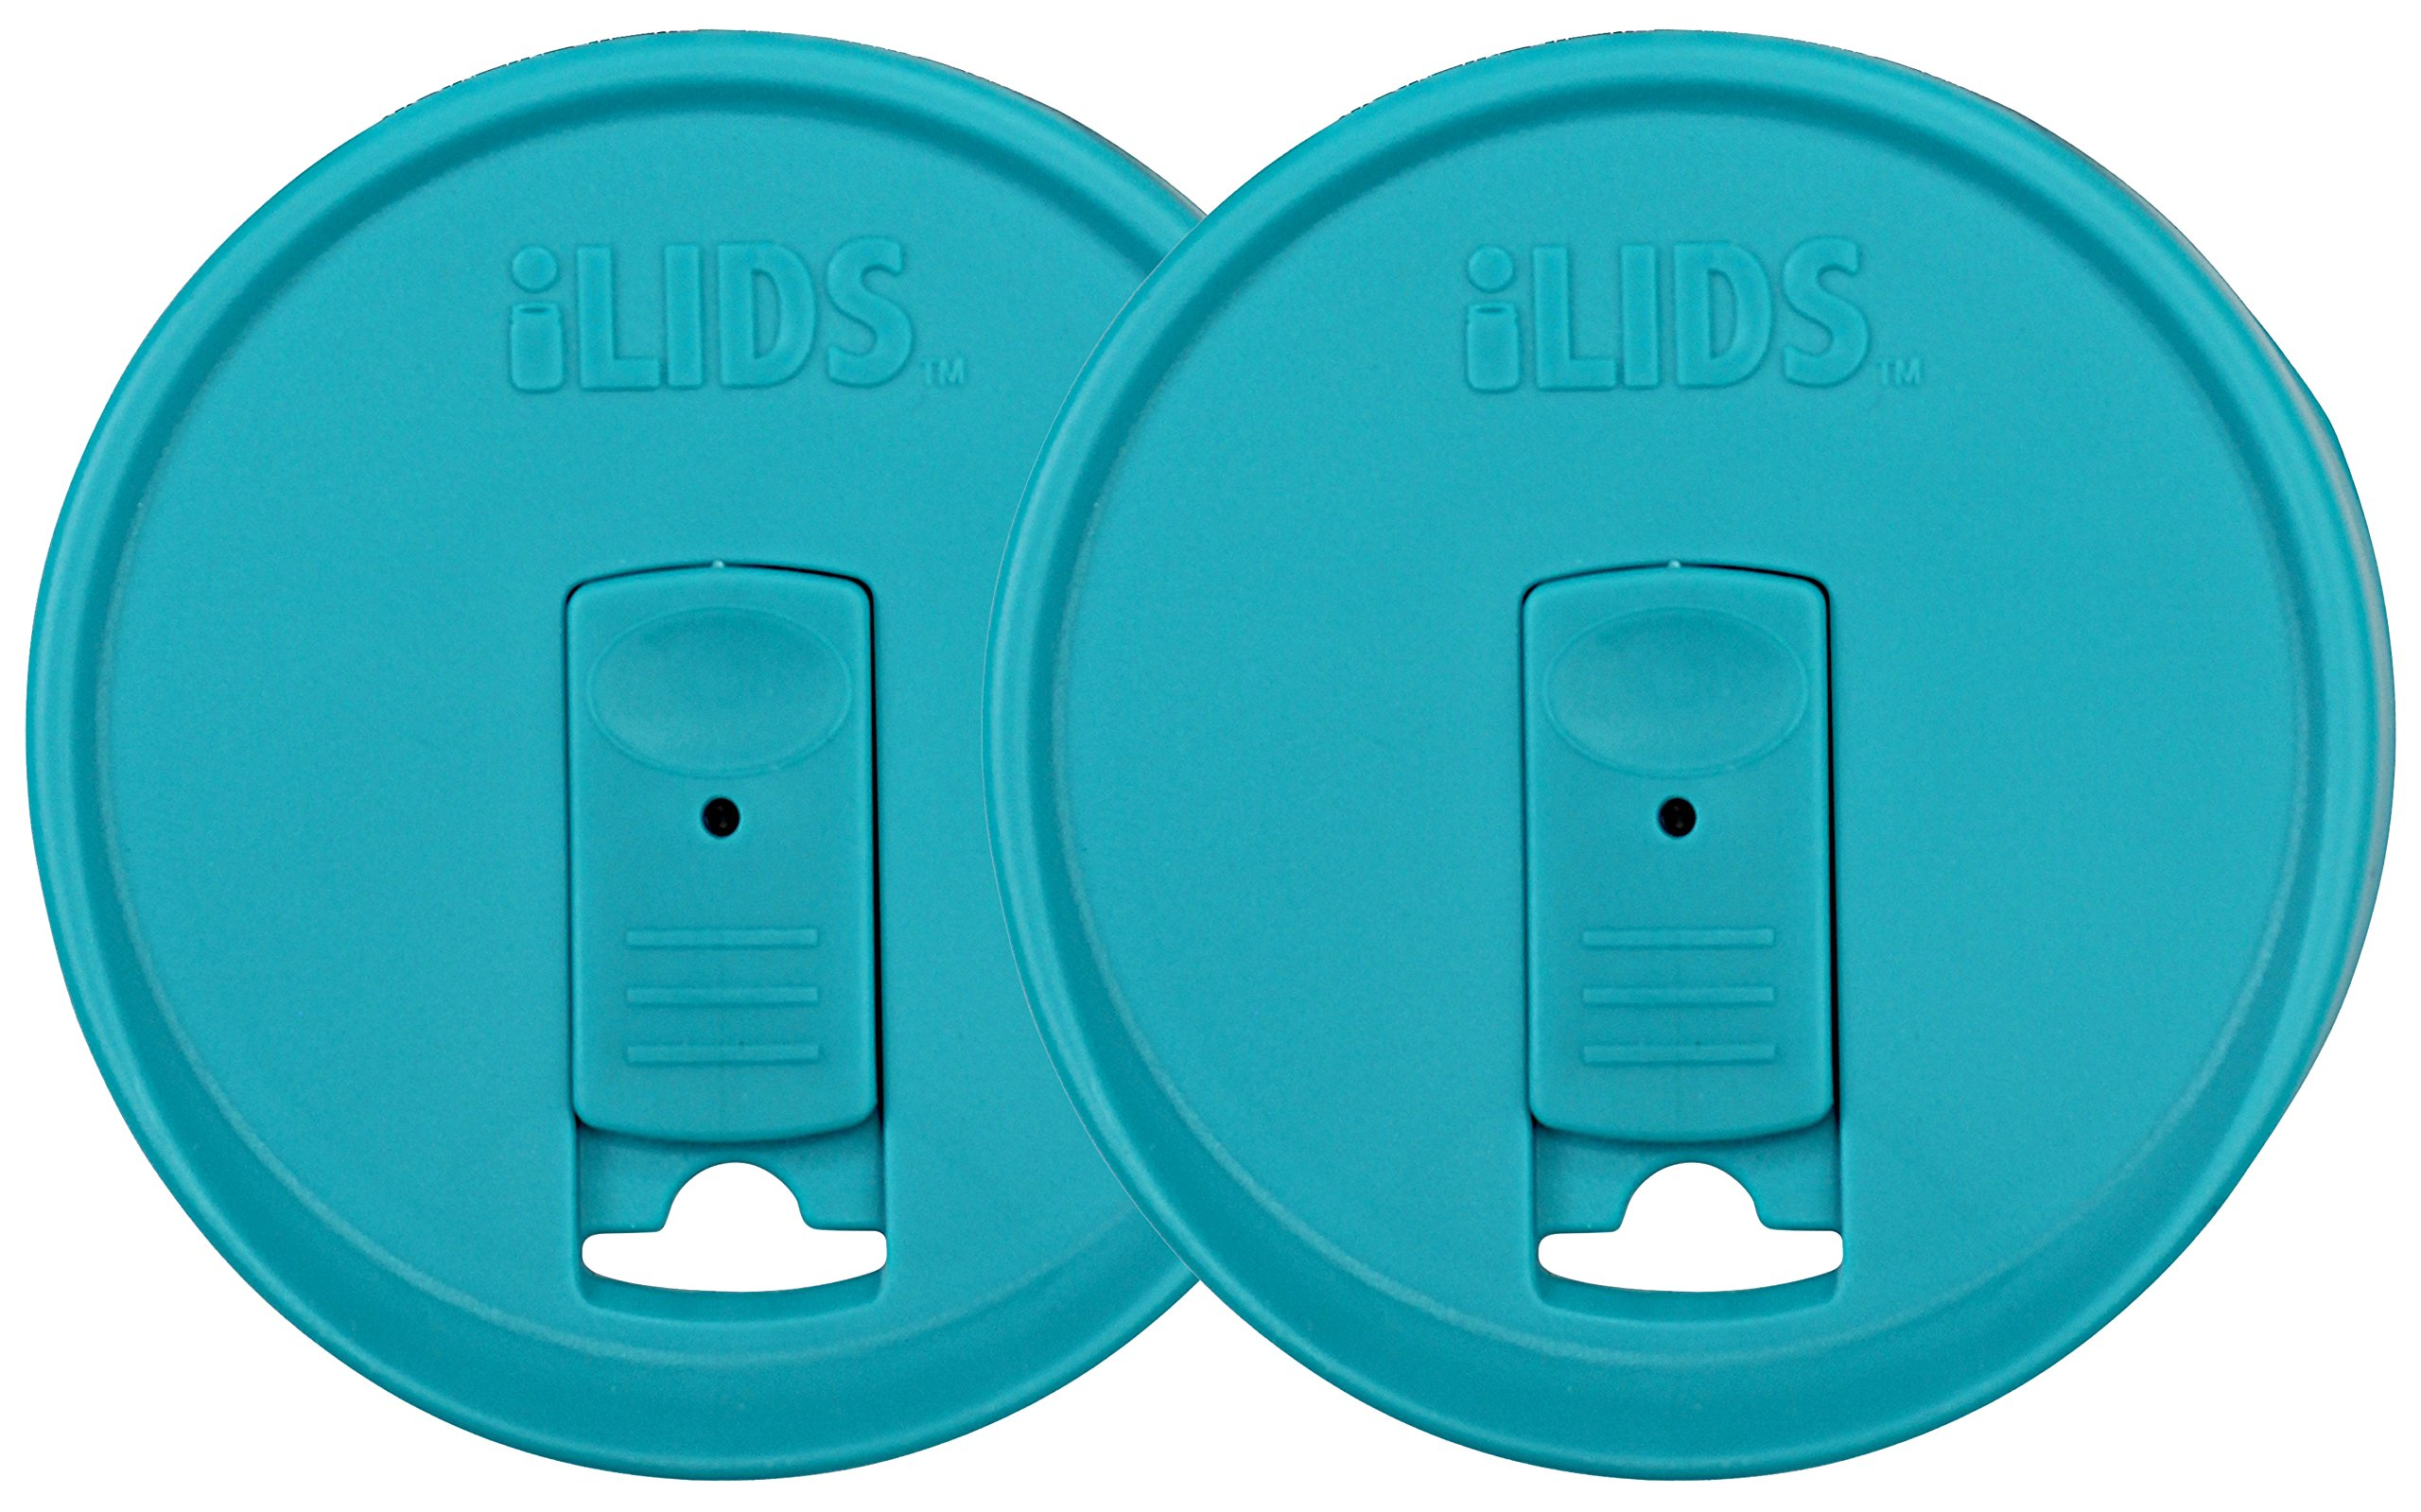 iLIDS Mason Jar Drink Lid, Wide Mouth, BPA Free, Made in the USA, Aqua Blue, 2-Pack